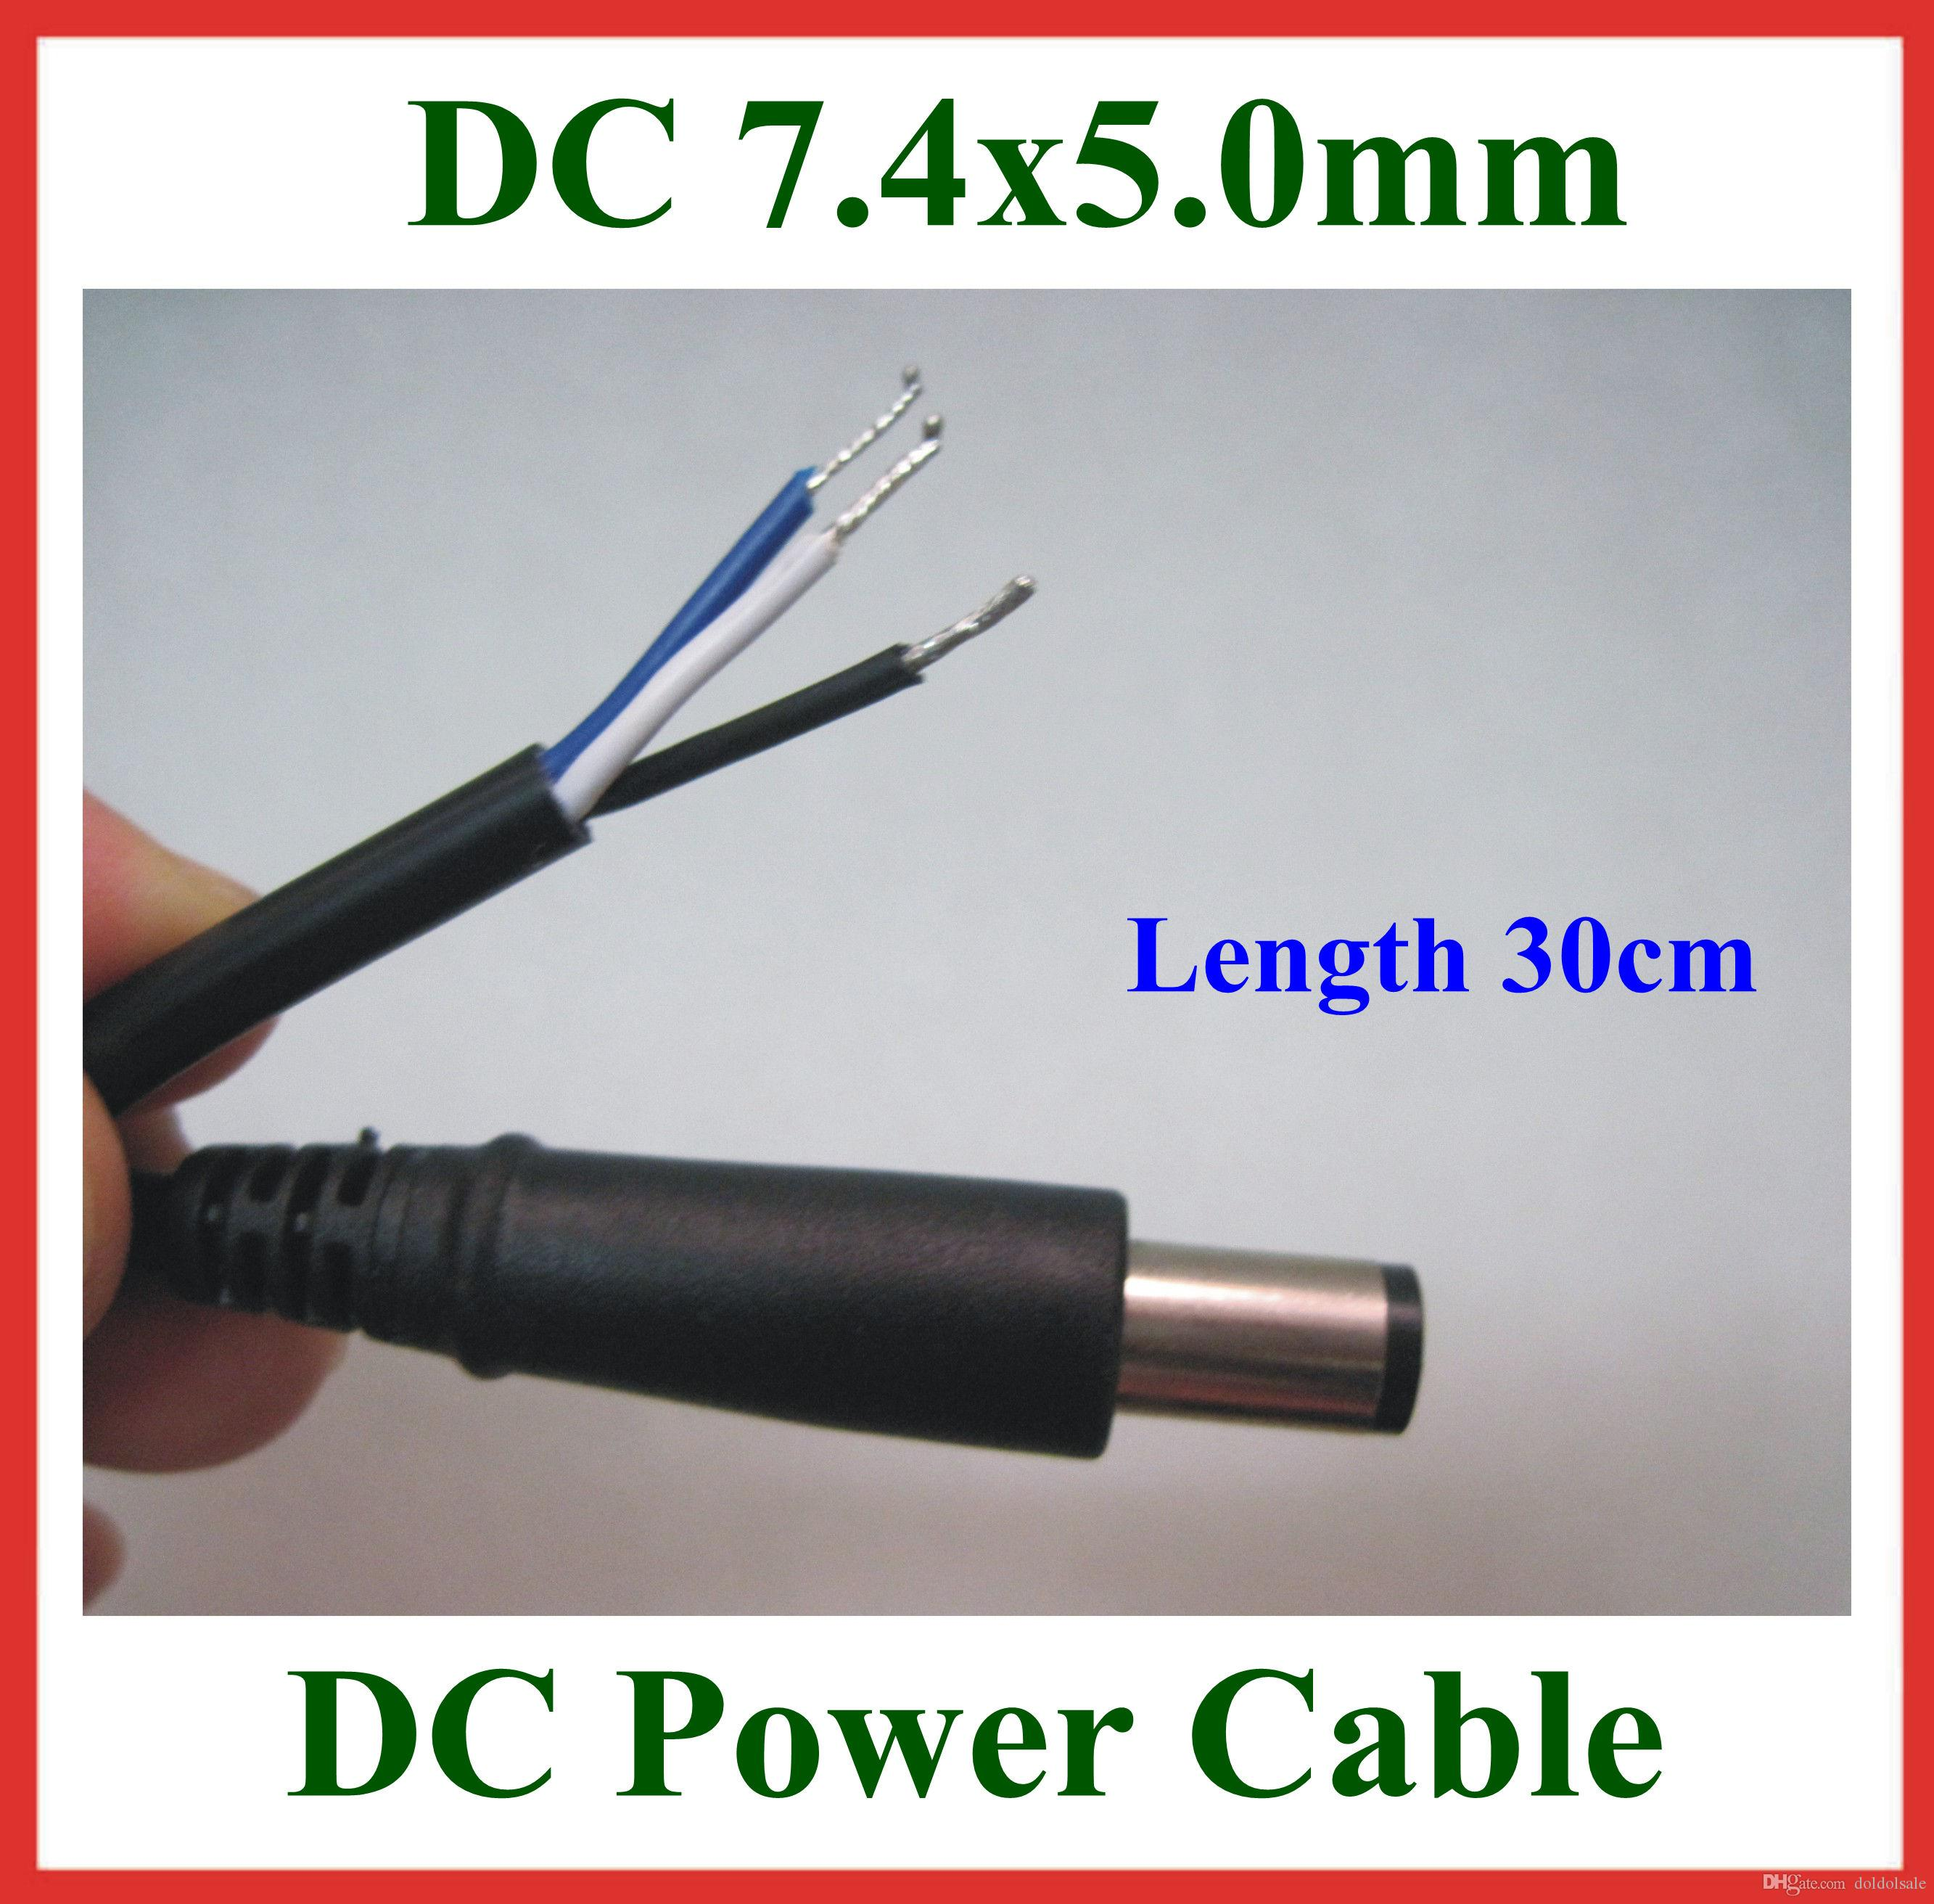 2pcs dc tip plug 7 4 5 0mm 7 4x5 0mm dc power dc tip plug 7 4*5 0mm 7 4x5 0mm dc power supply cable with pin wiring diagram for hp laptop charger at creativeand.co